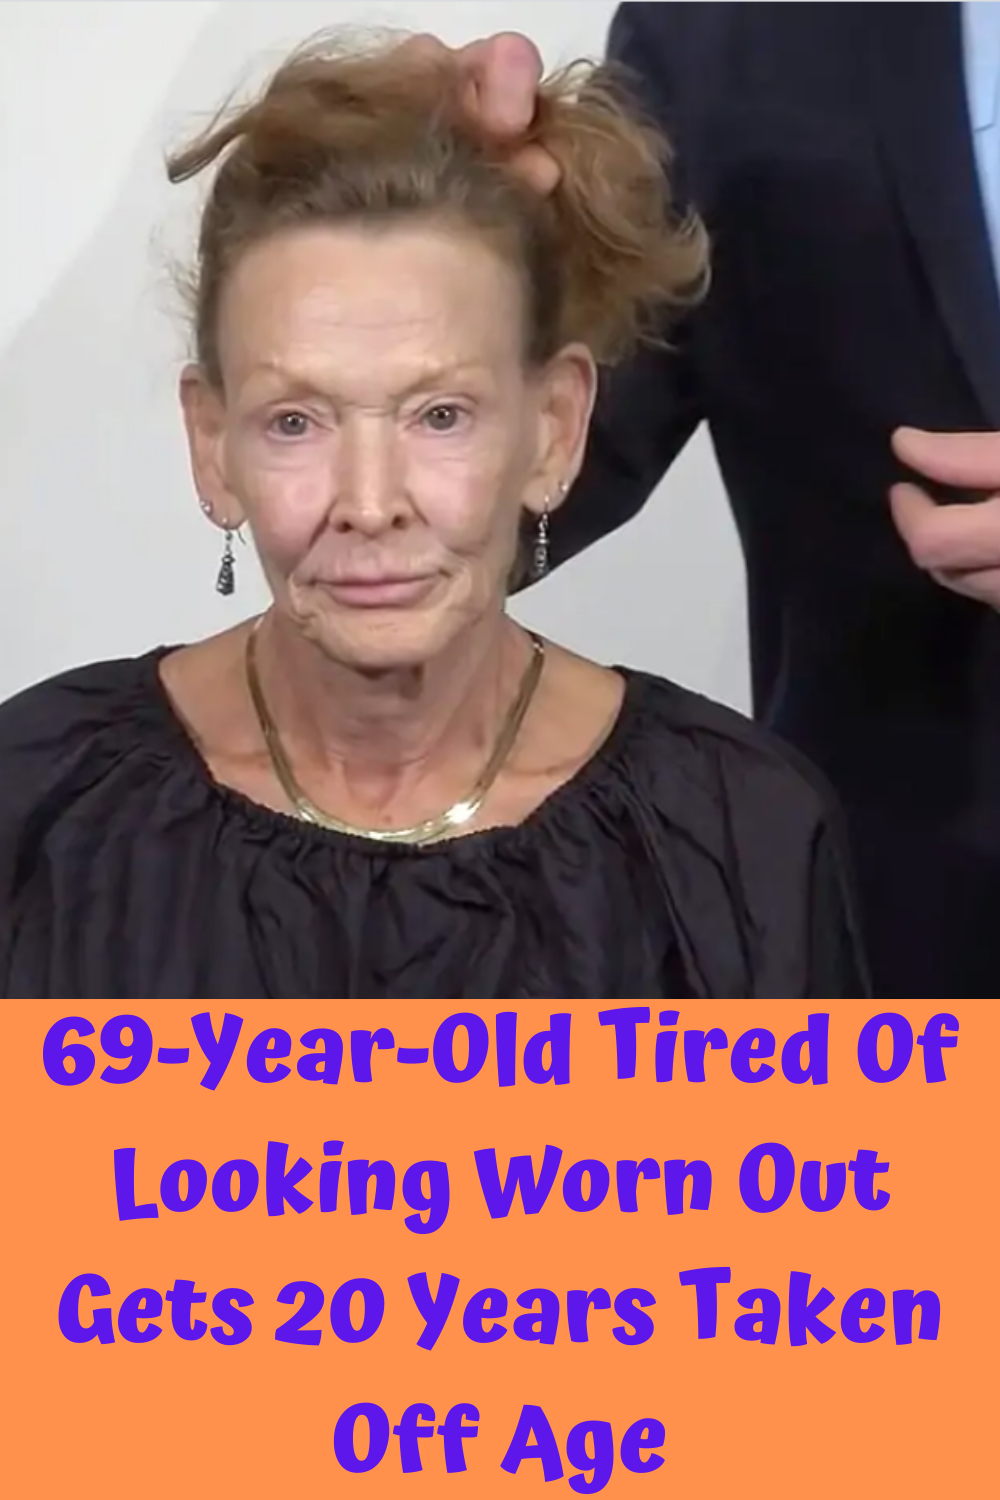 69-Year-Old Tired Of Looking Worn Out Gets 20 Year